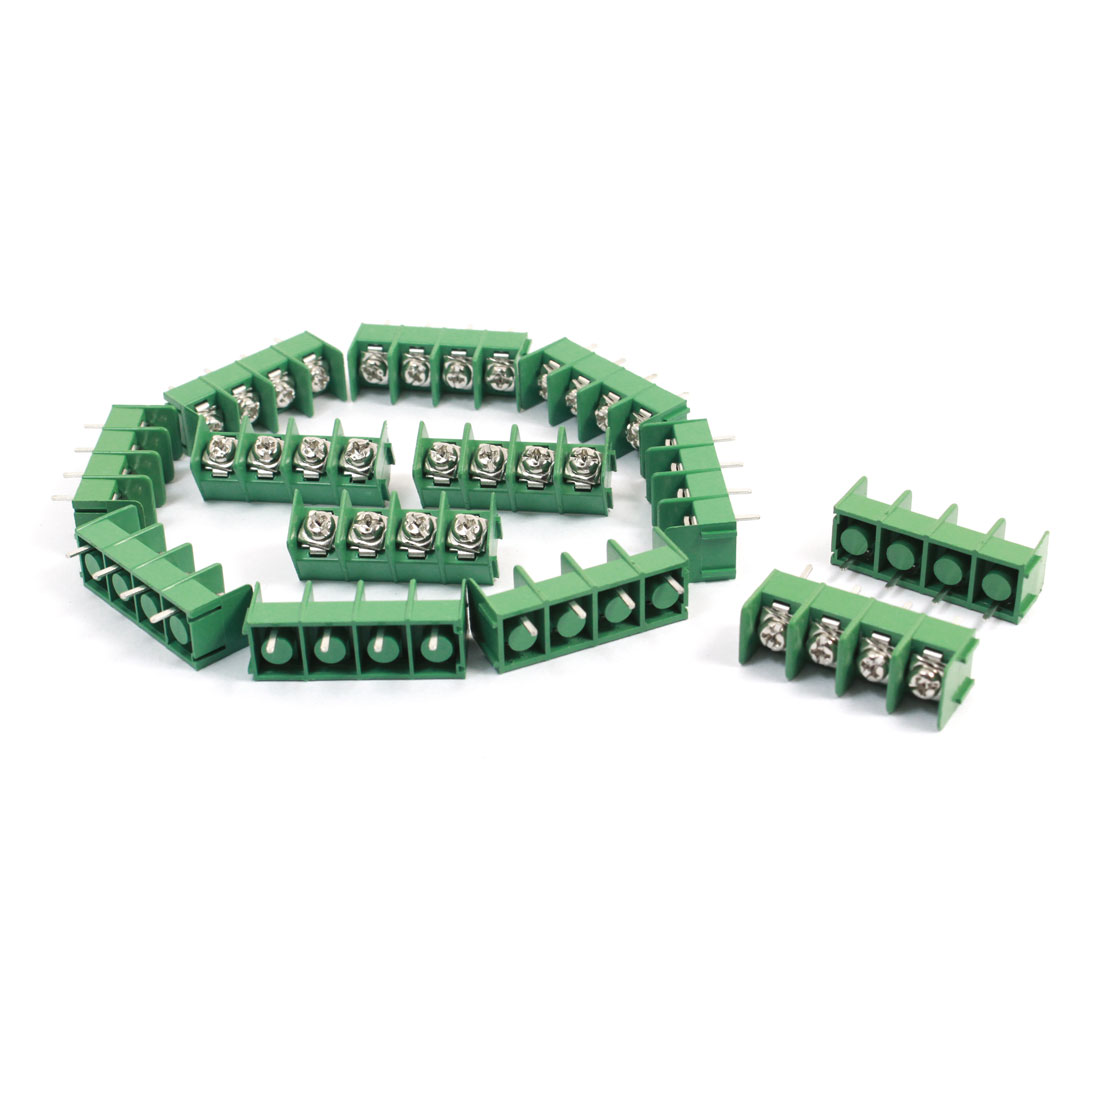 10 Pcs 4 pins 8.5mm Pitch 4 Position Terminal Block Strip Green 300V